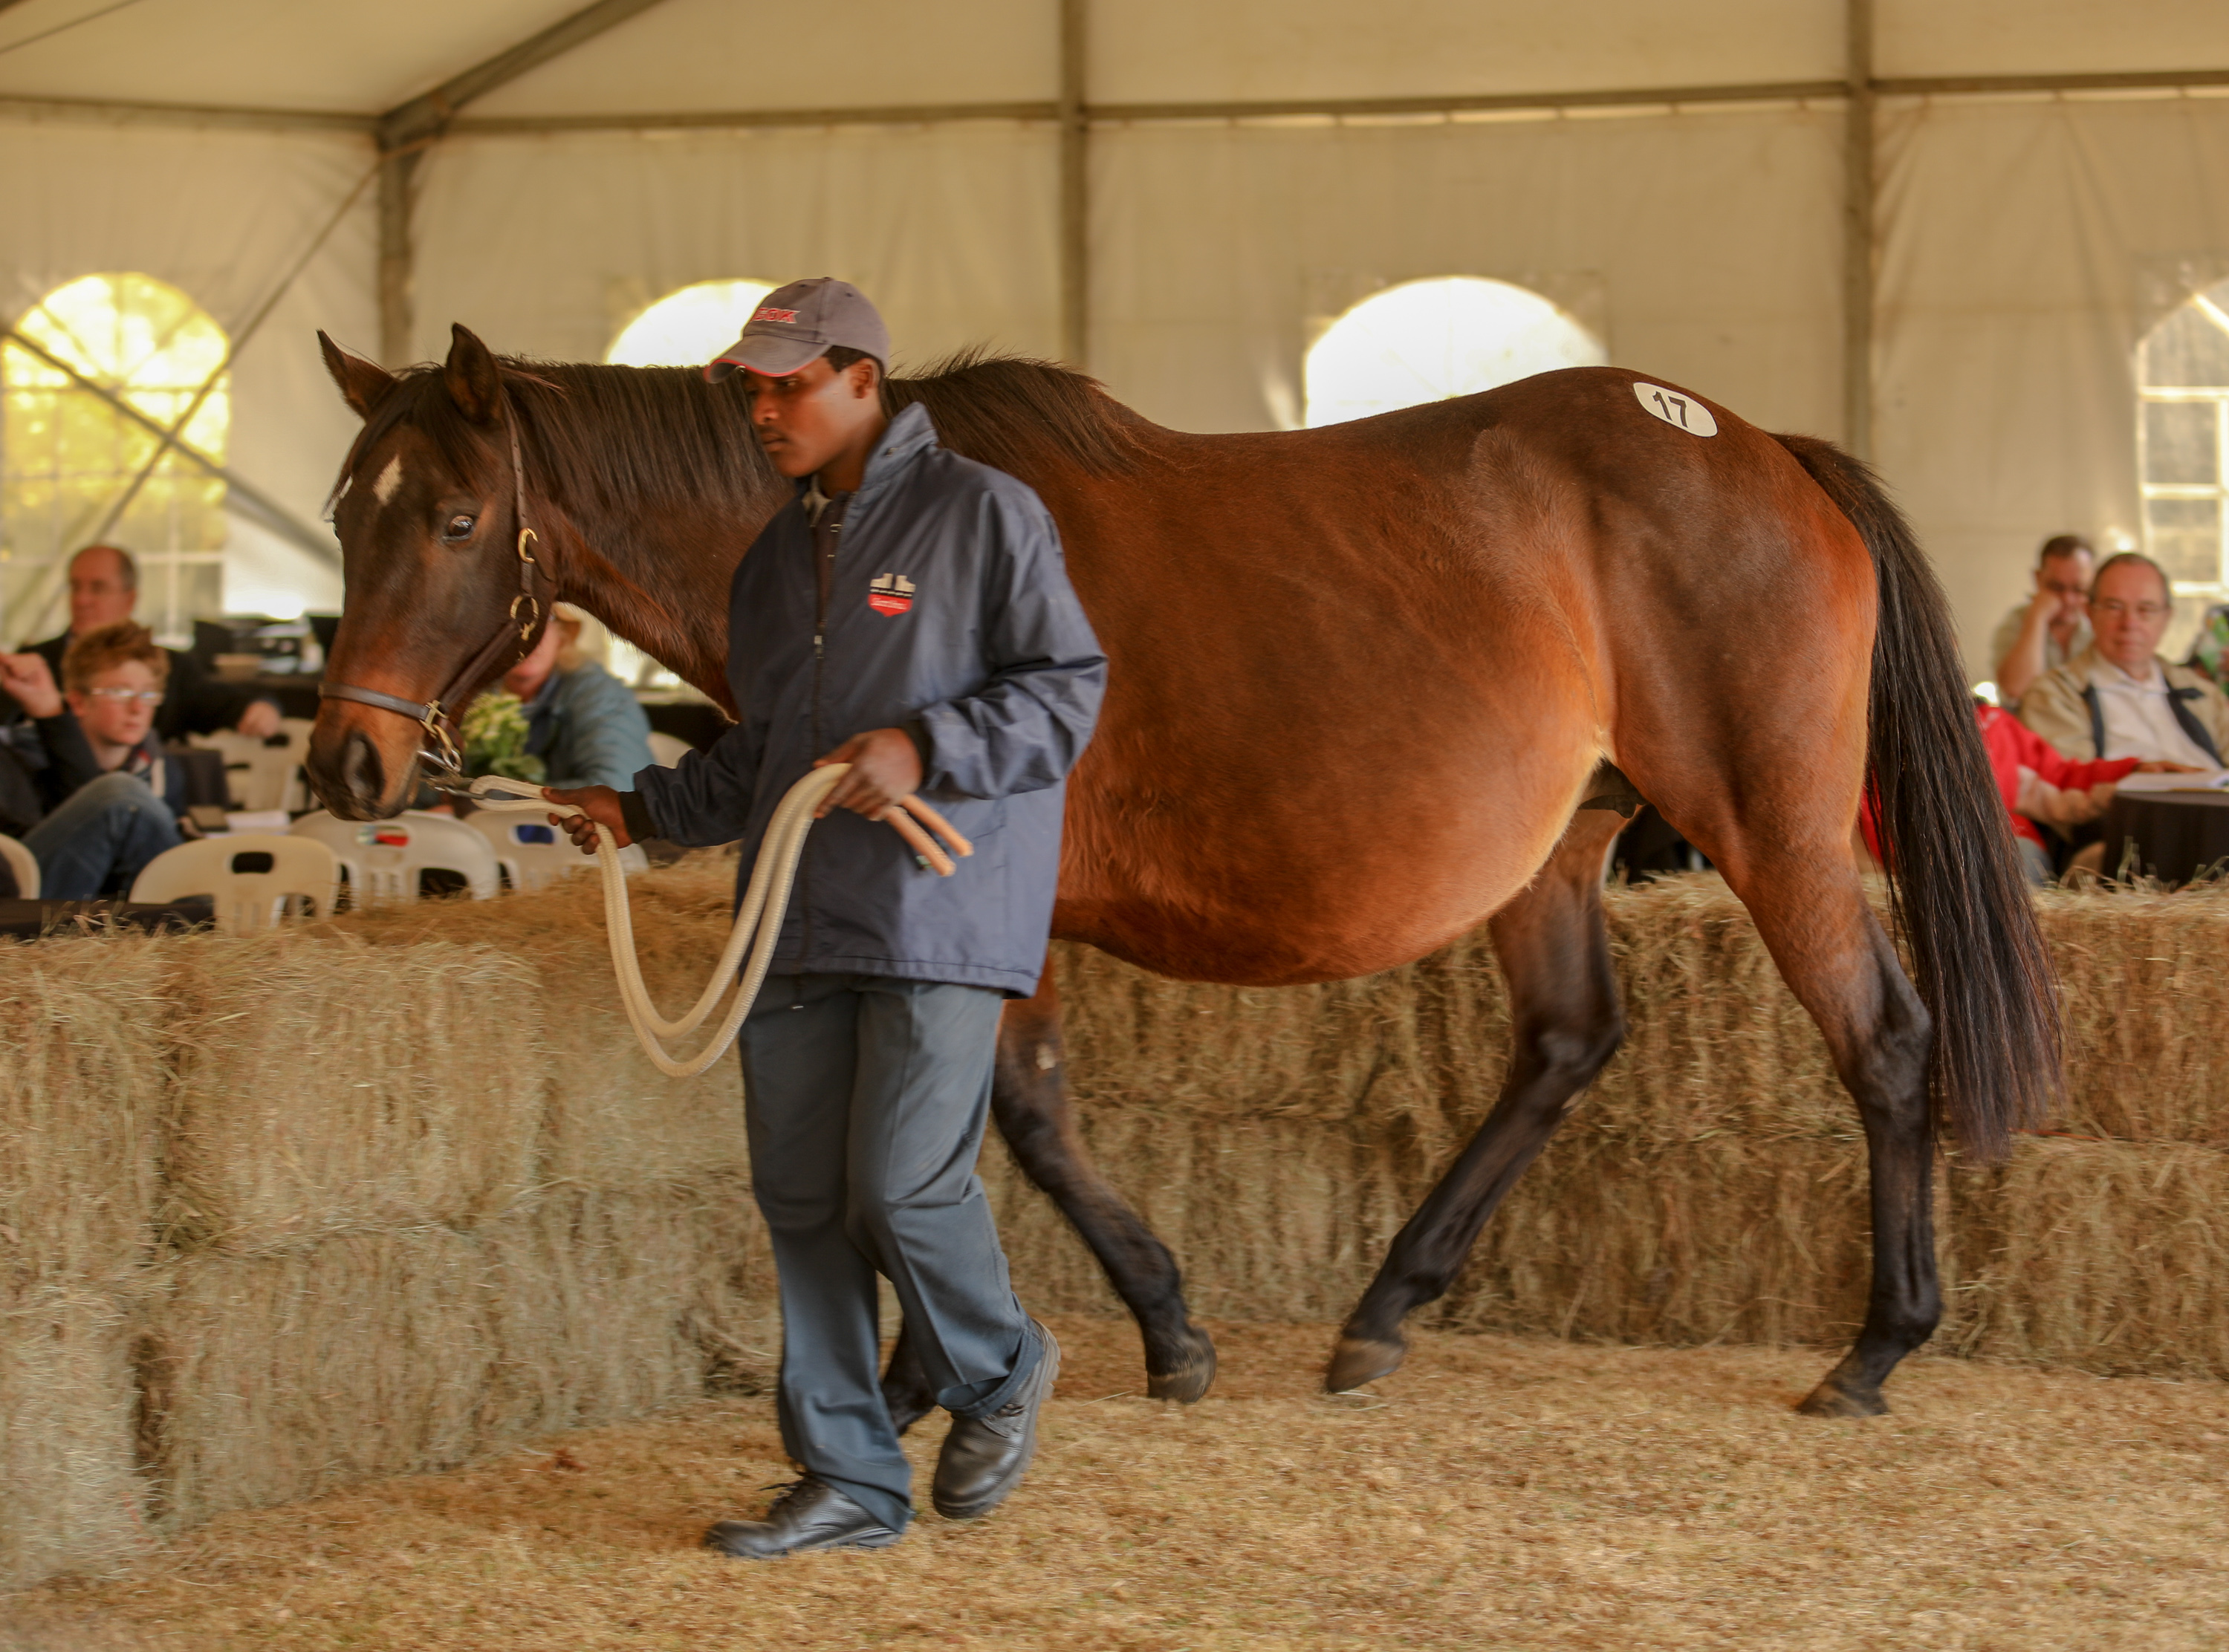 Sahara sold in foal to Crusade to Summerview Stud for R170 000. Image: Candiese Marnewick